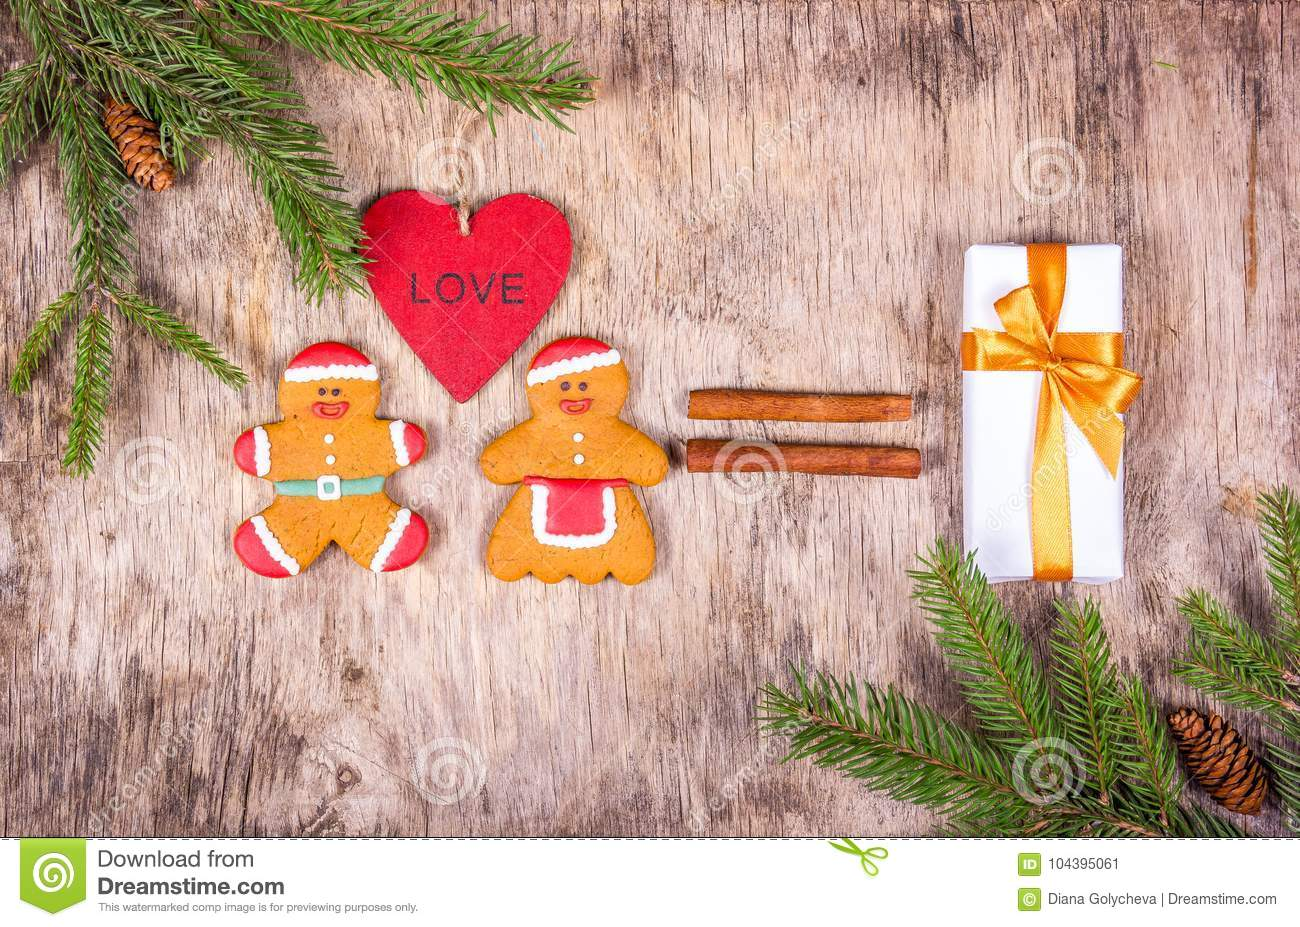 Loving Gingerbread Men. Christmas Decorations With Fir Tree And A ...